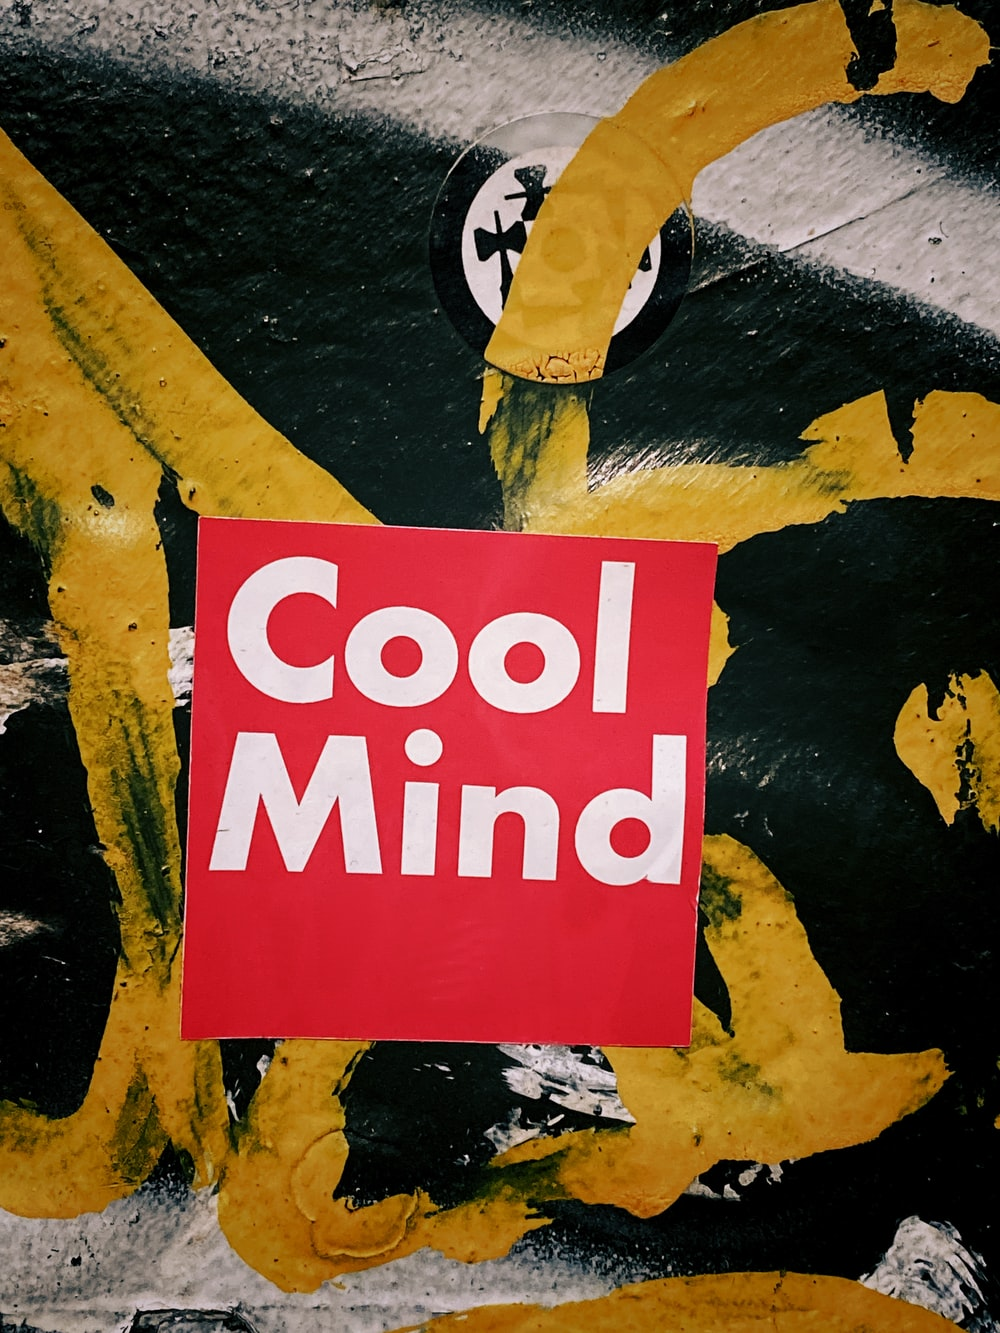 cool mind text overlay